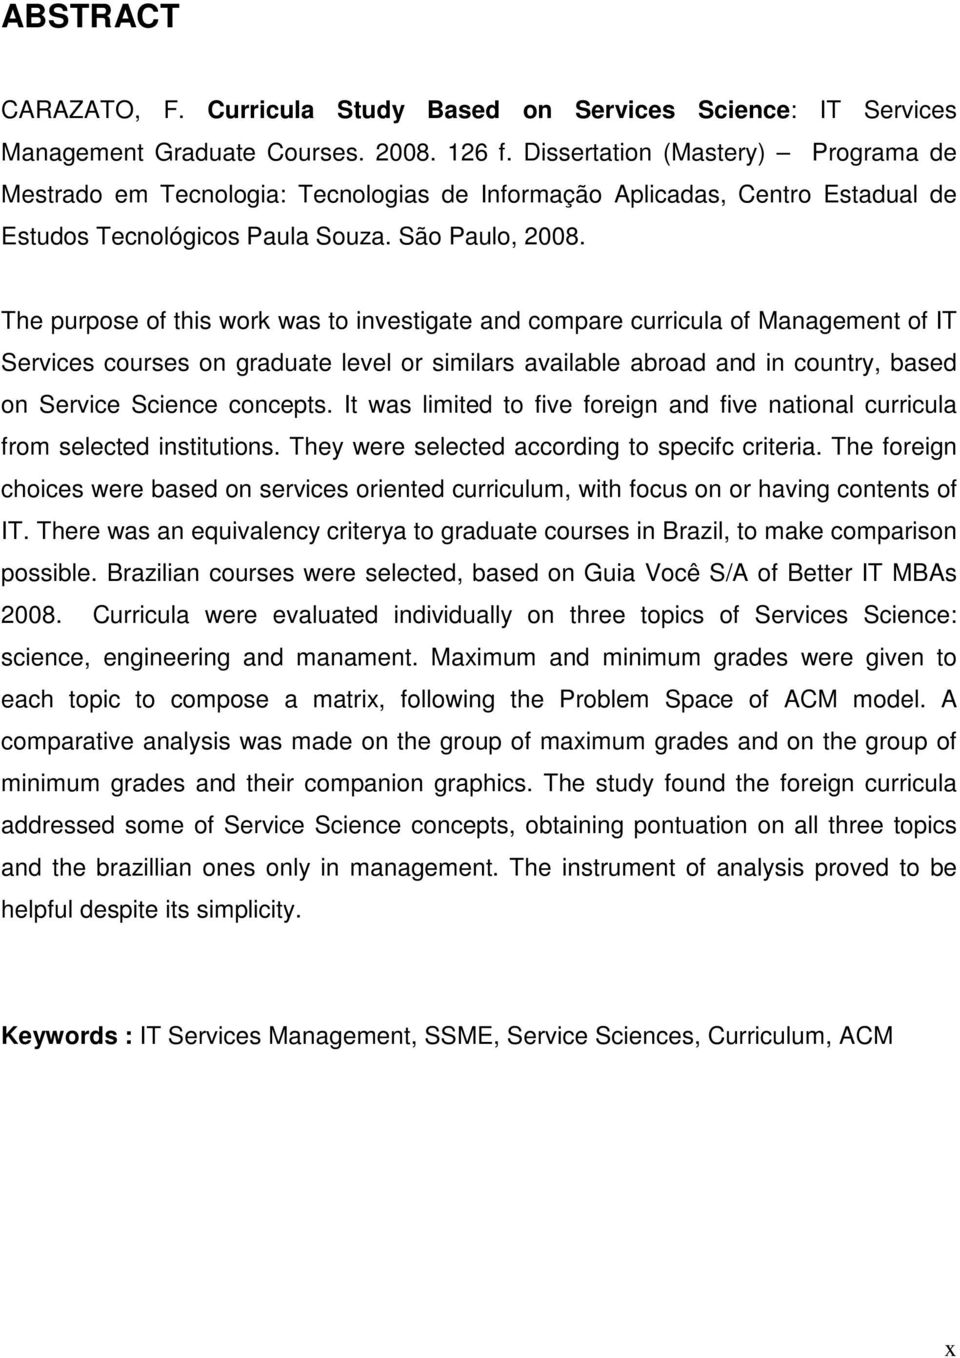 The purpose of this work was to investigate and compare curricula of Management of IT Services courses on graduate level or similars available abroad and in country, based on Service Science concepts.